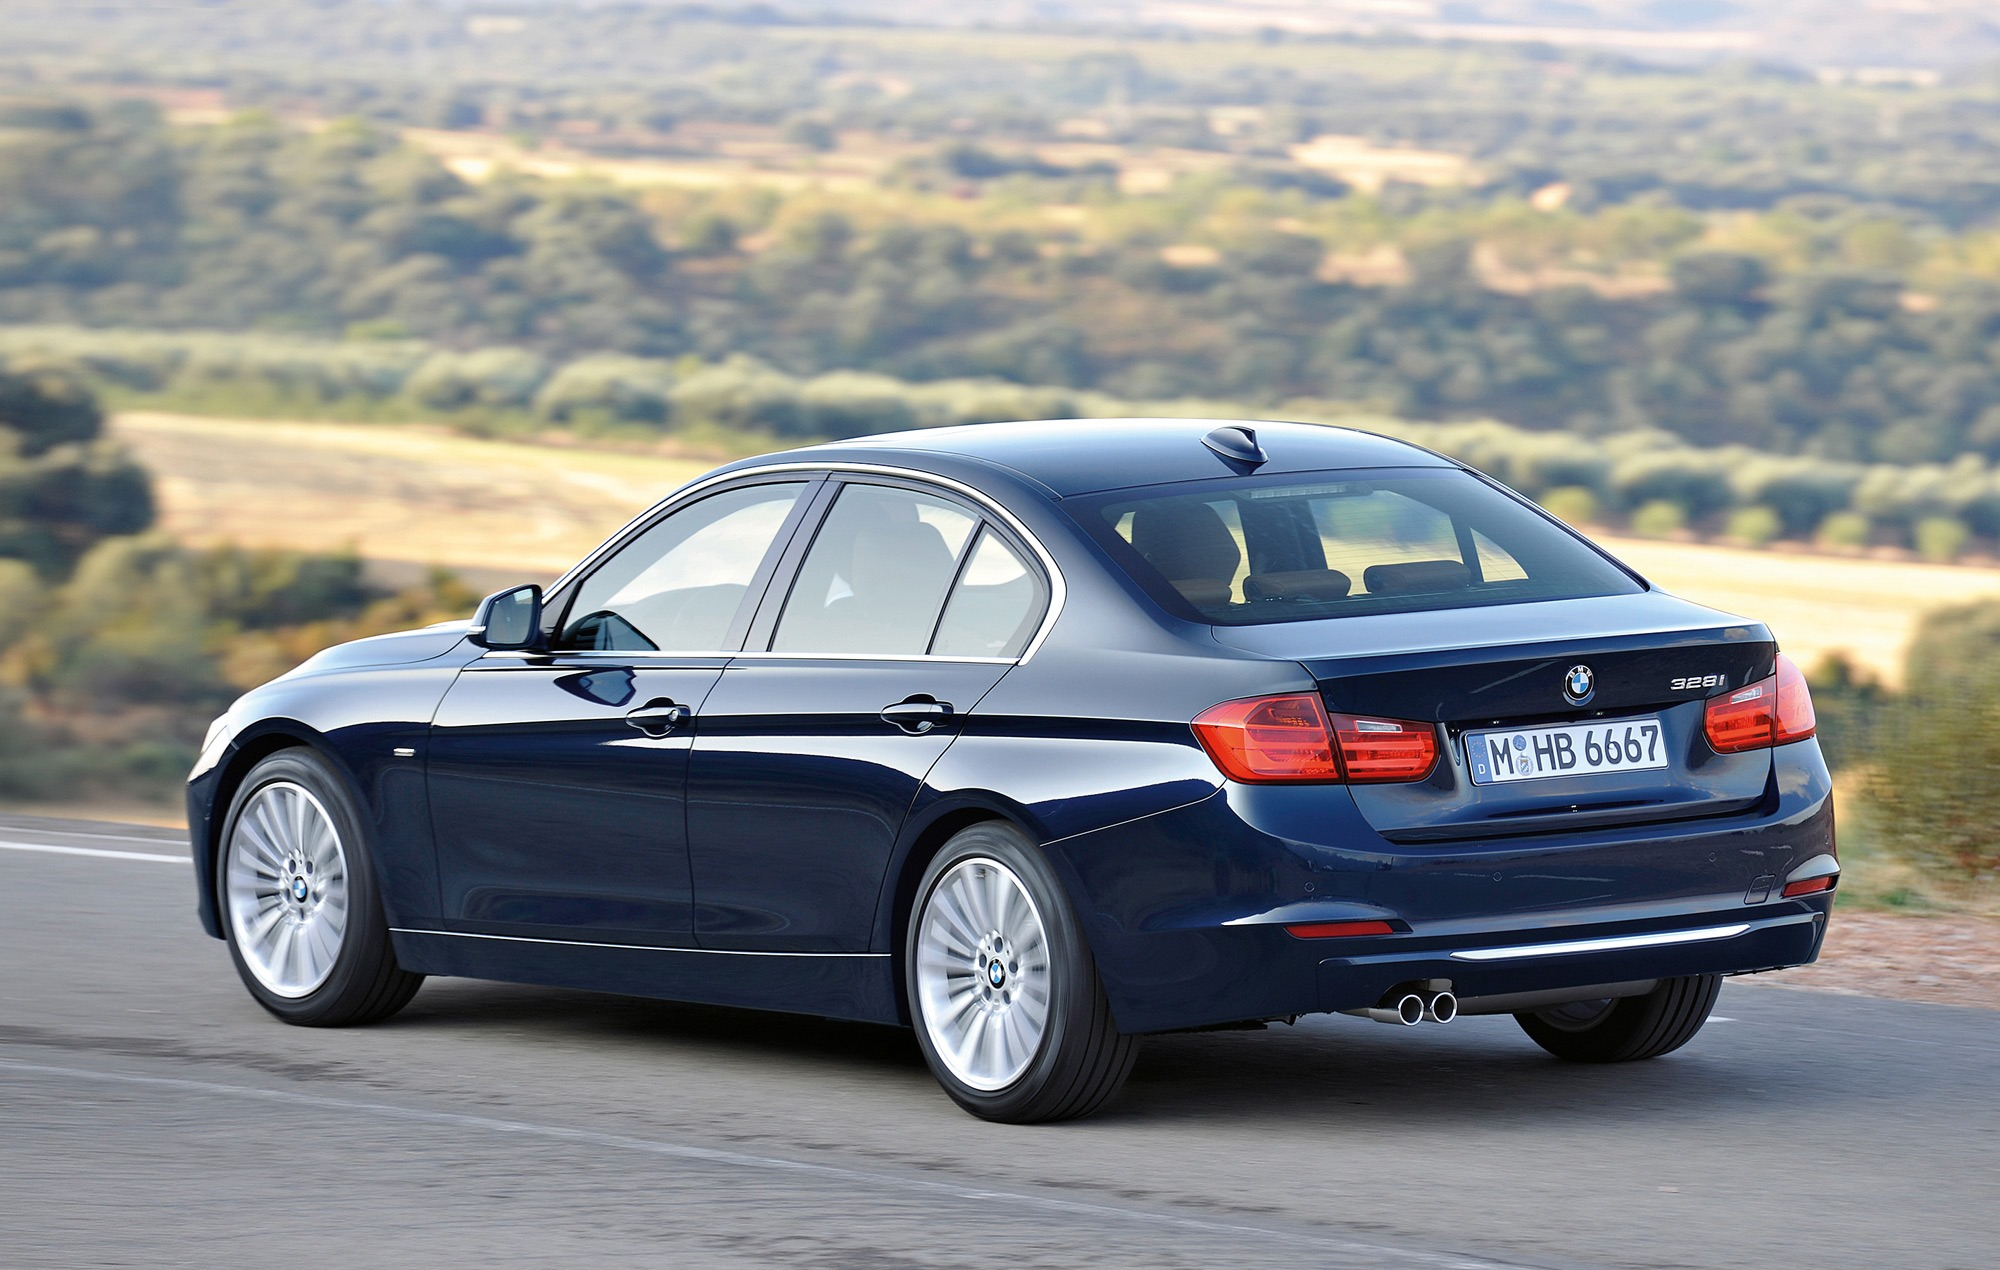 BMW 3 Series 2020 Exterior Rear Side View